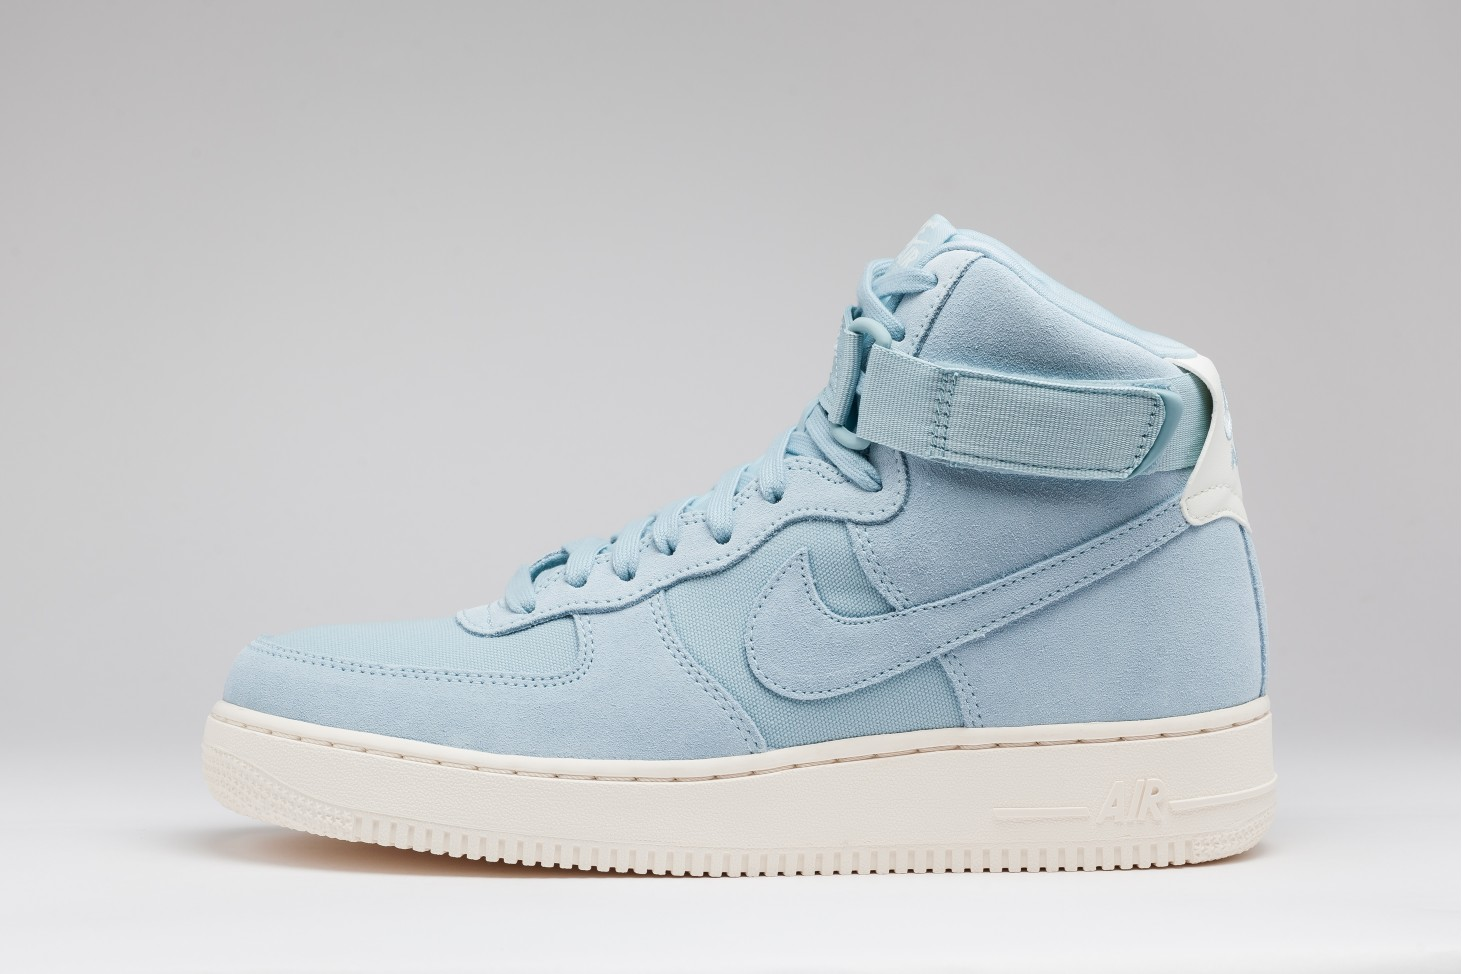 Comanda Nike Air Force 1 High 07 Suede 100% originali  c5769d9304cf